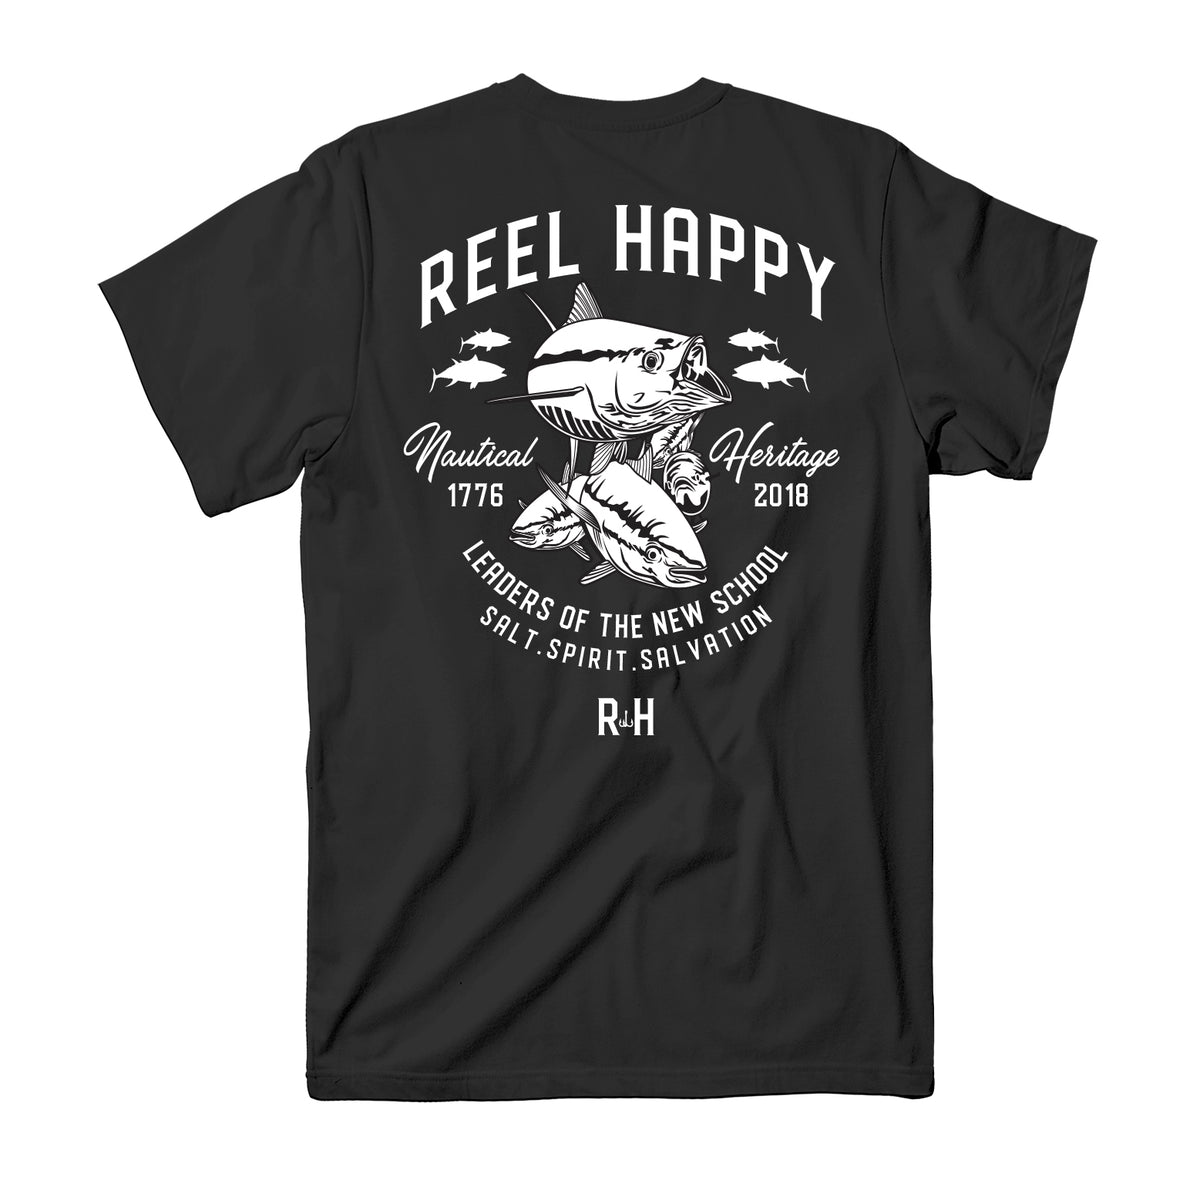 True School Pocket Tee - Black - Reel Happy Co